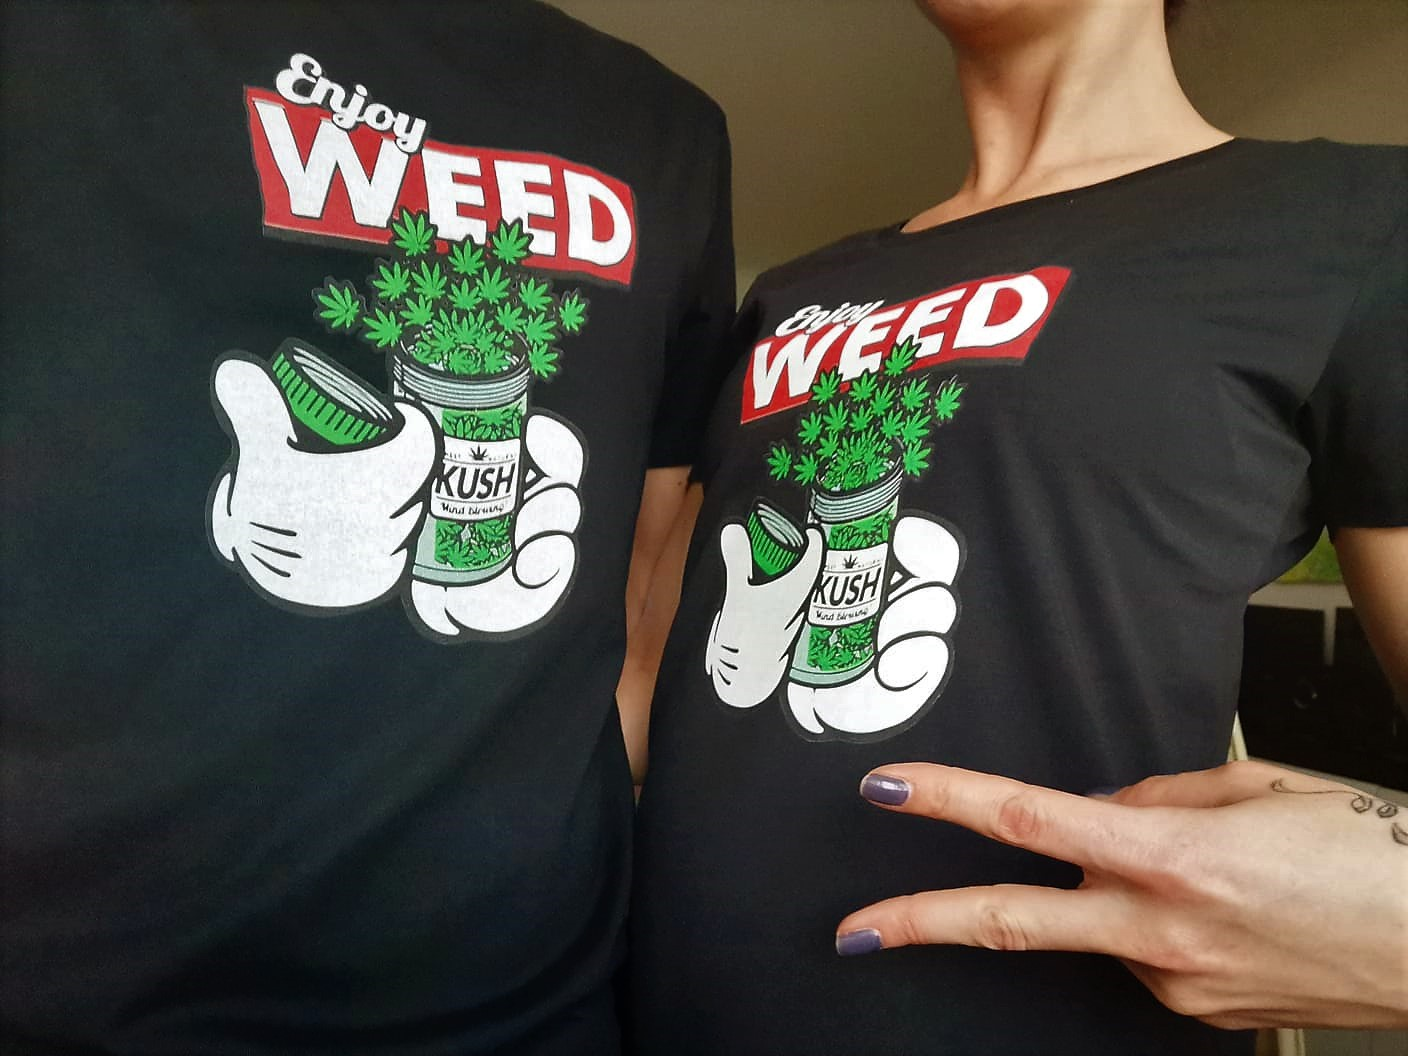 Enjoy Weed Shirt 2018/2019